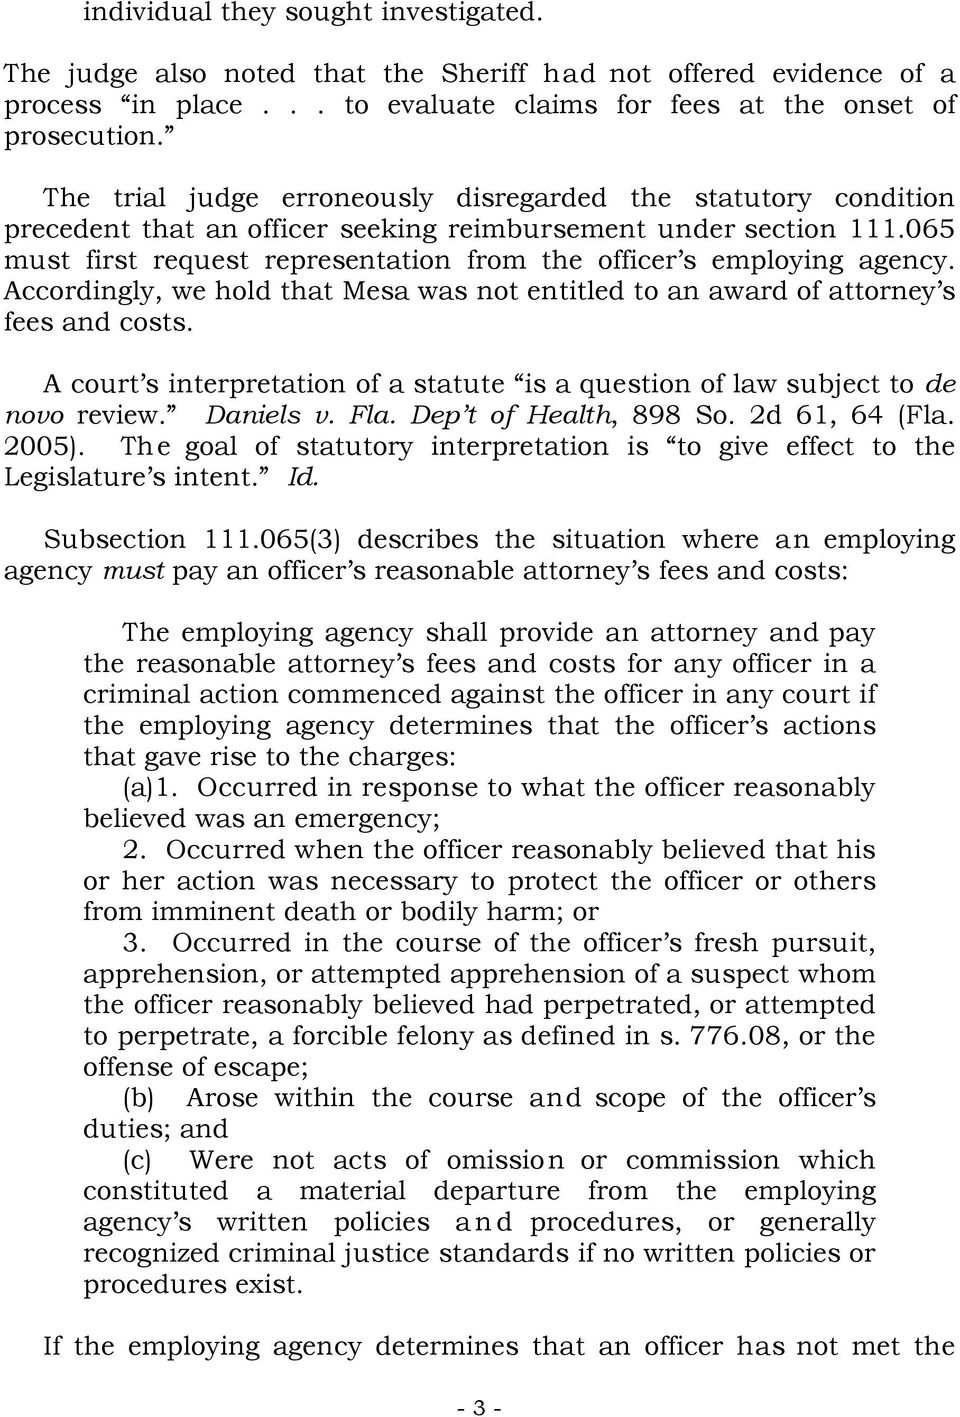 065 must first request representation from the officer s employing agency. Accordingly, we hold that Mesa was not entitled to an award of attorney s fees and costs.